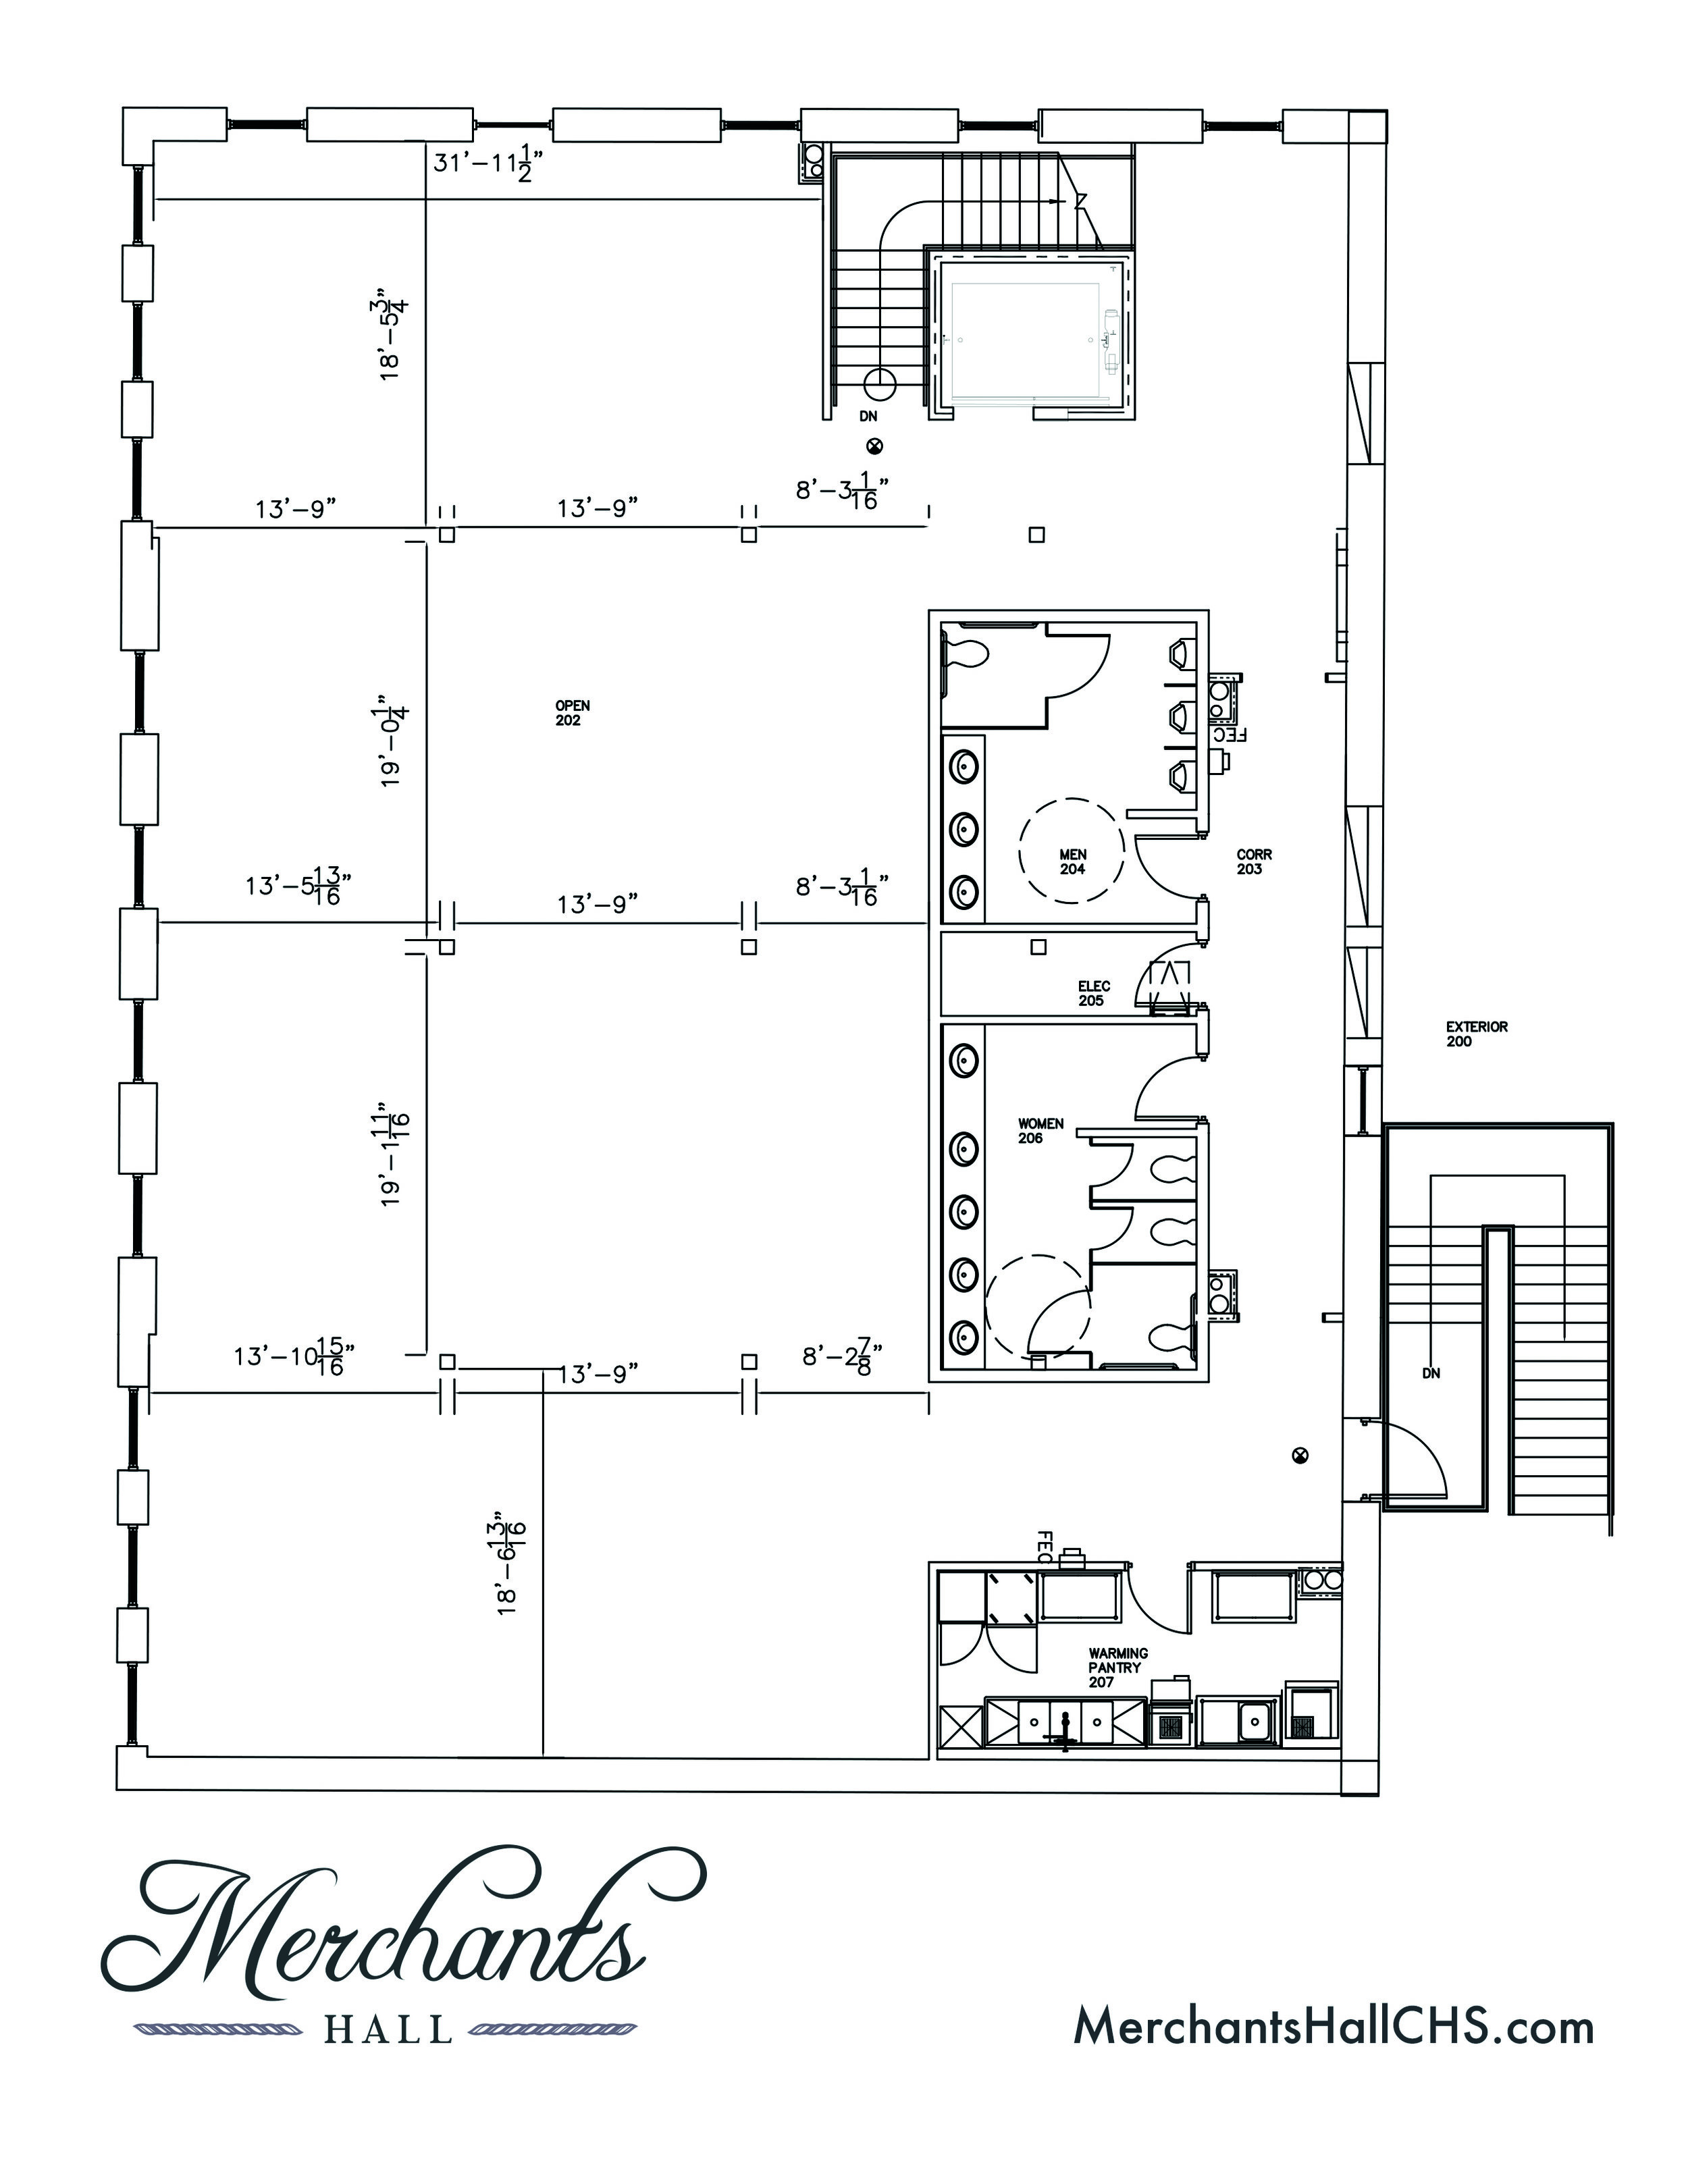 Merchants Hall Layouts